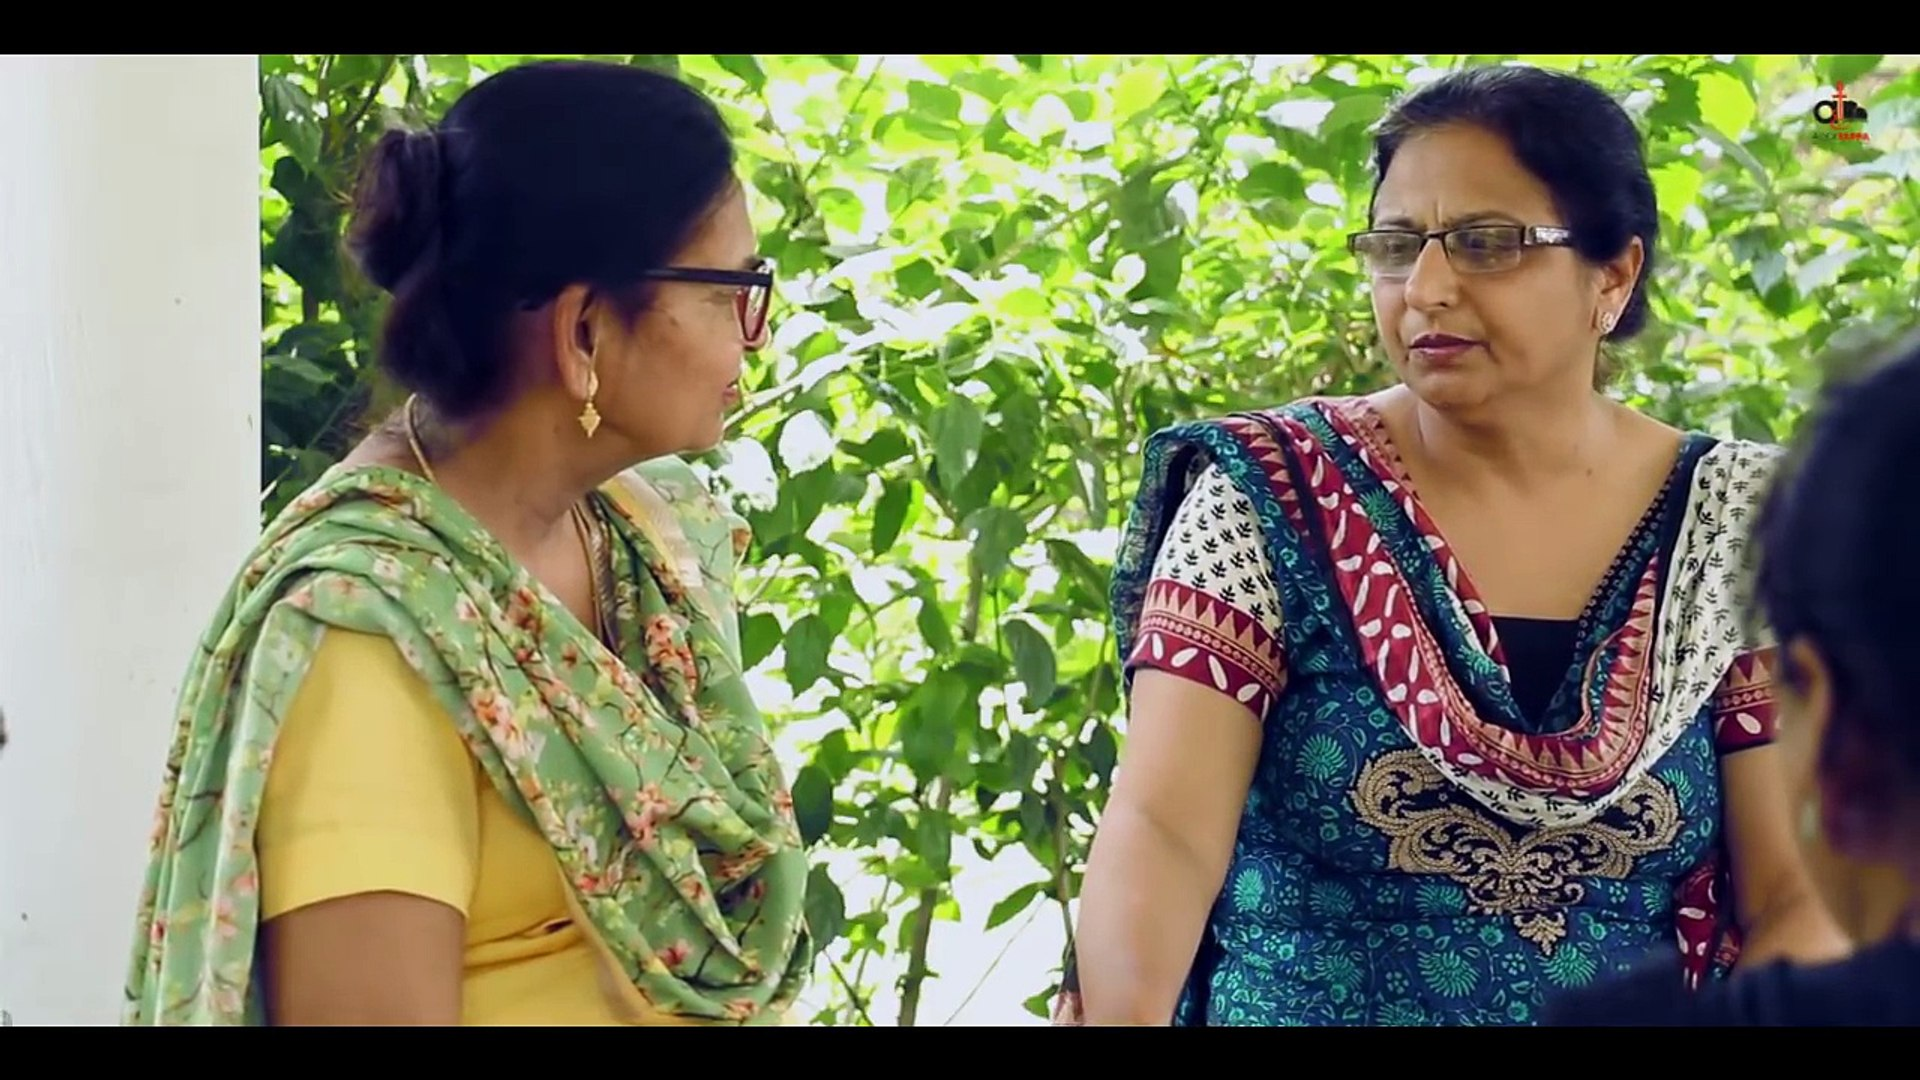 The Real Mother - Punjabi Short Movie - Based on a True Story - Happy Mothers Da